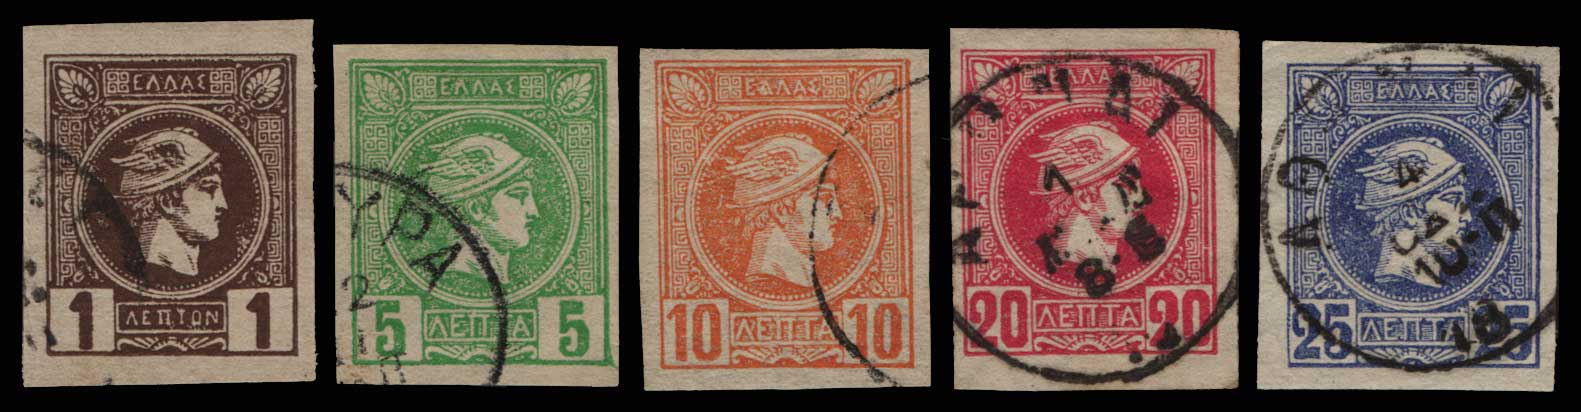 Lot 367 - -  SMALL HERMES HEAD ATHENSPRINTING - 1st PERIOD -  Athens Auctions Public Auction 76 General Stamp Sale